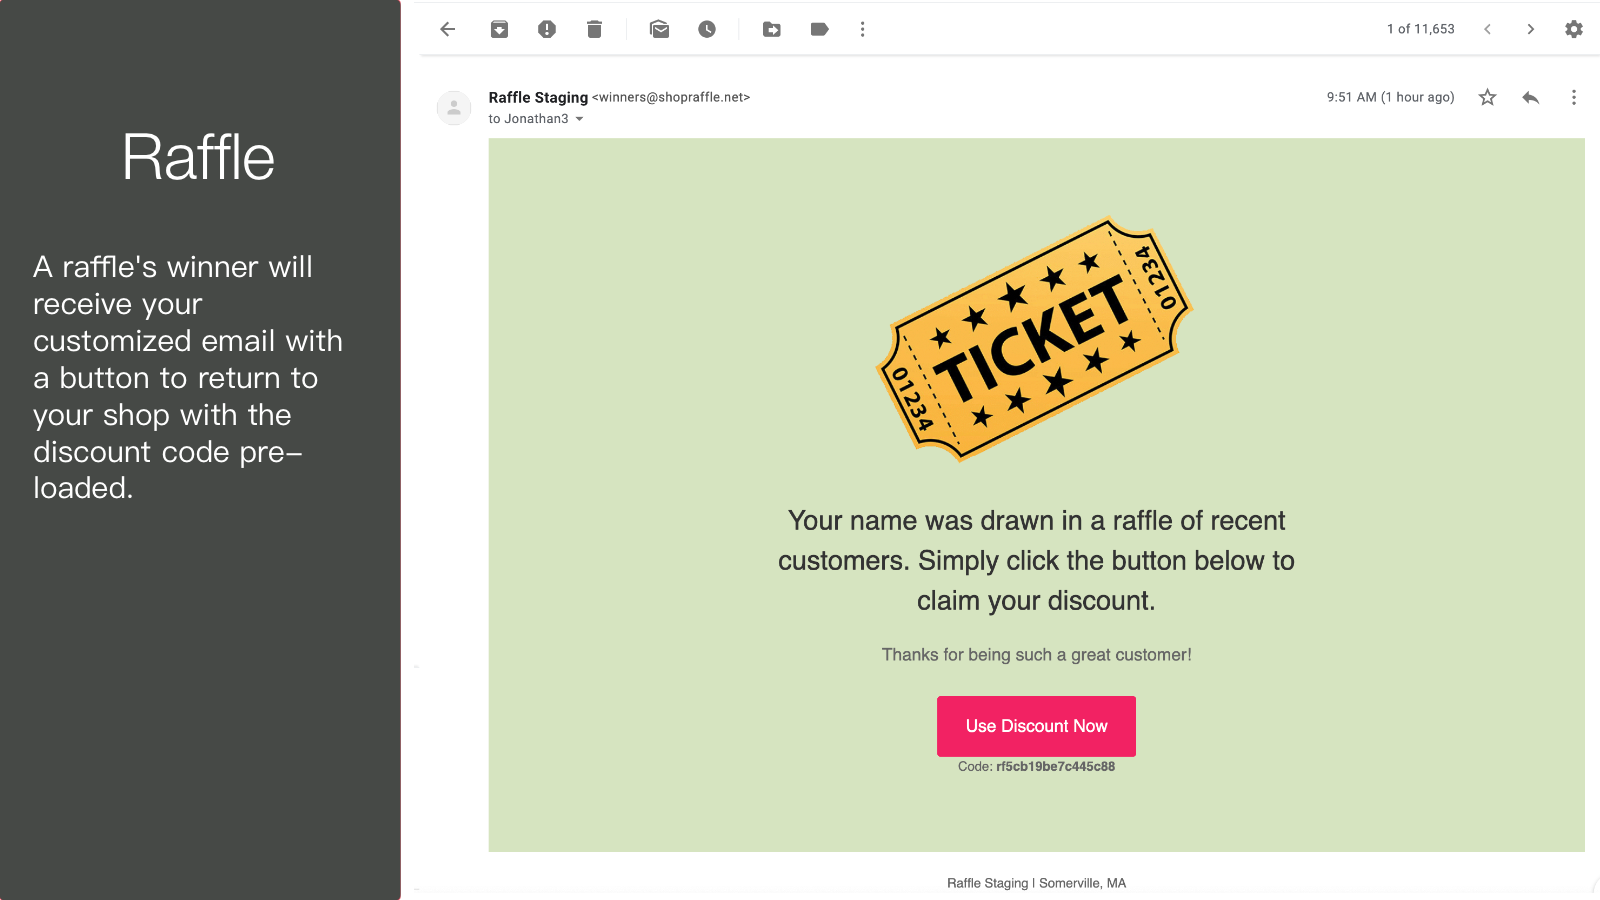 Winner's email to return to shop with discount enabled.